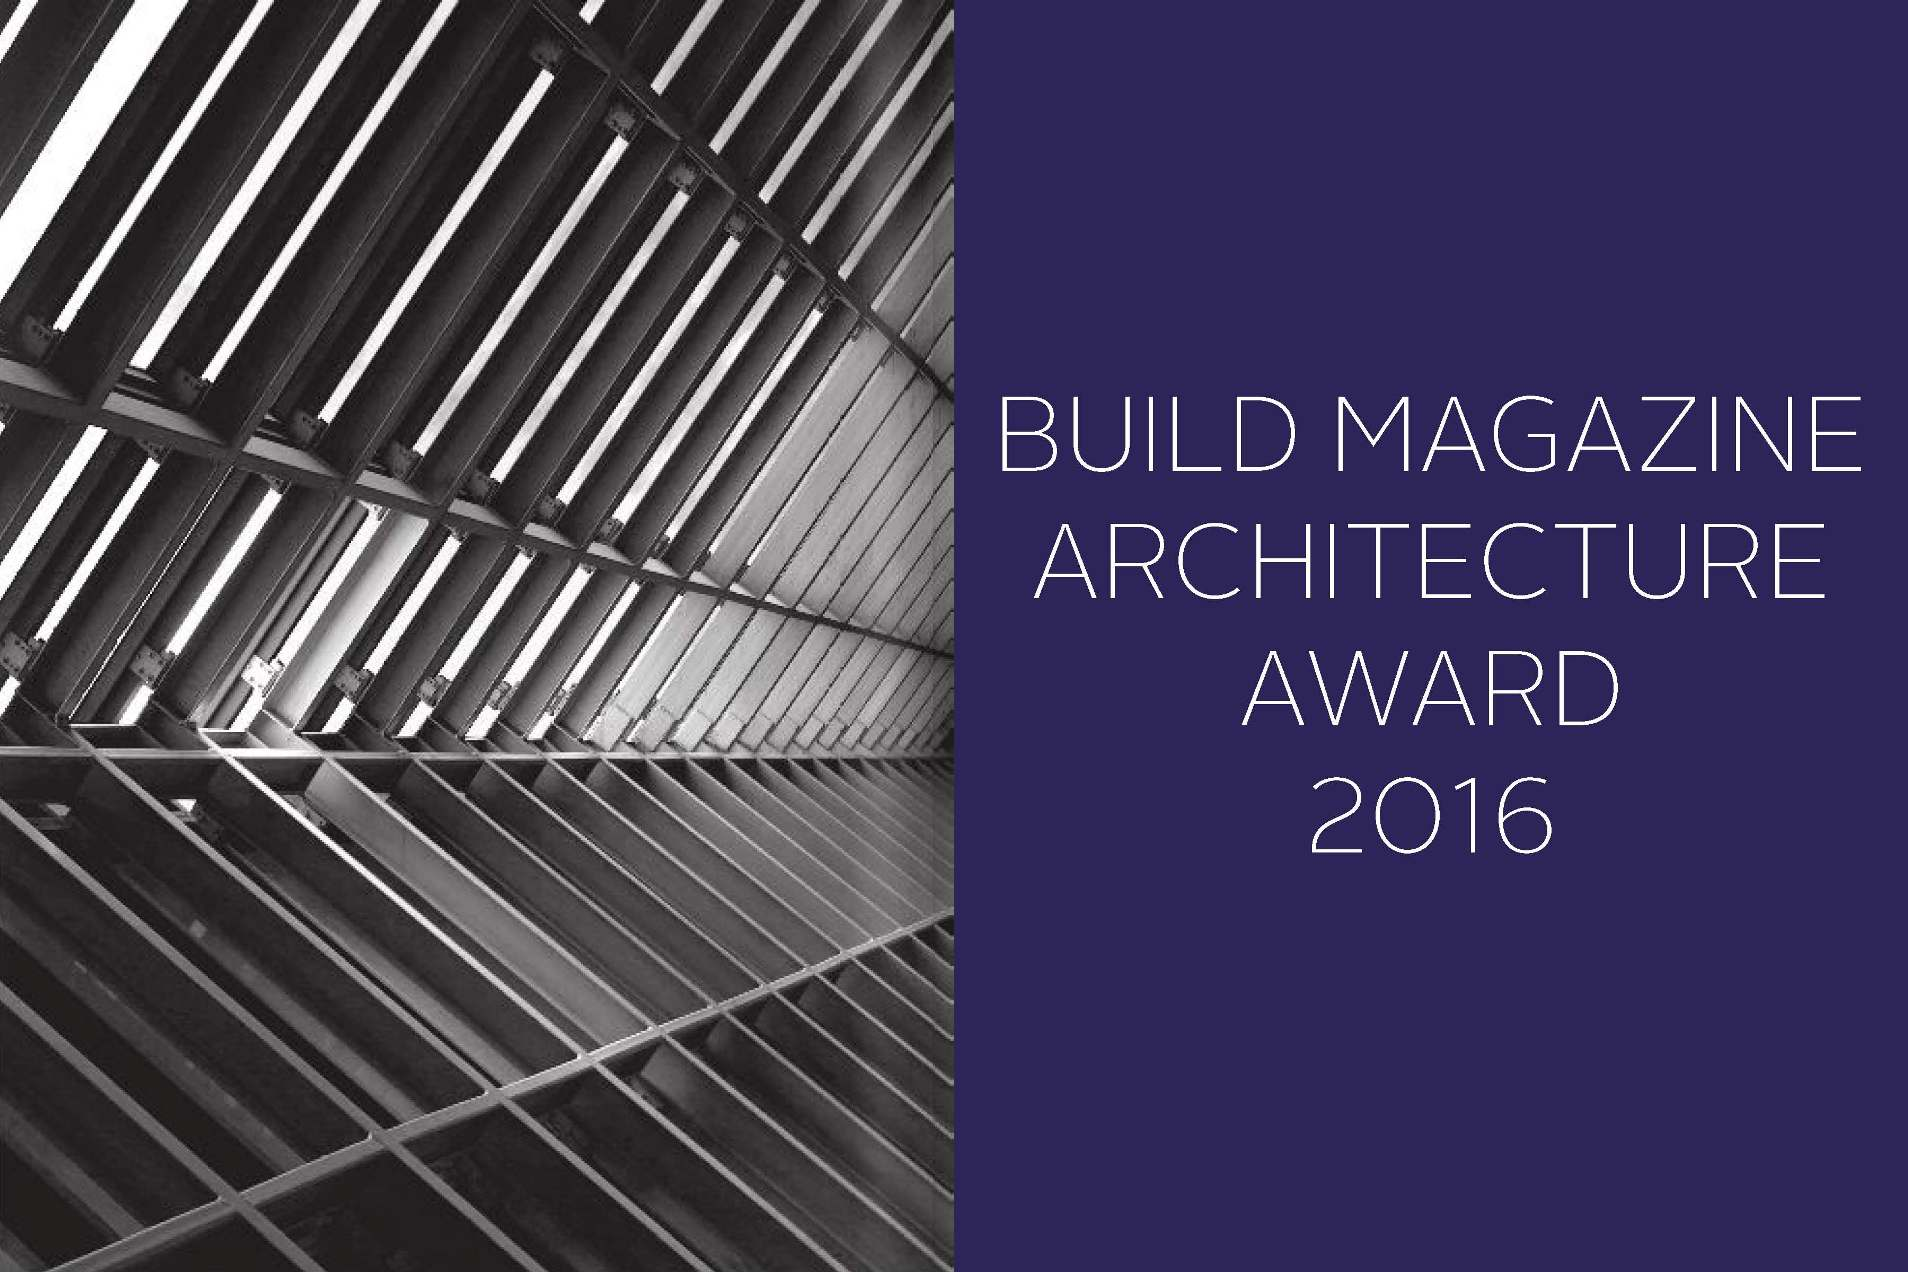 Award for ide-arch